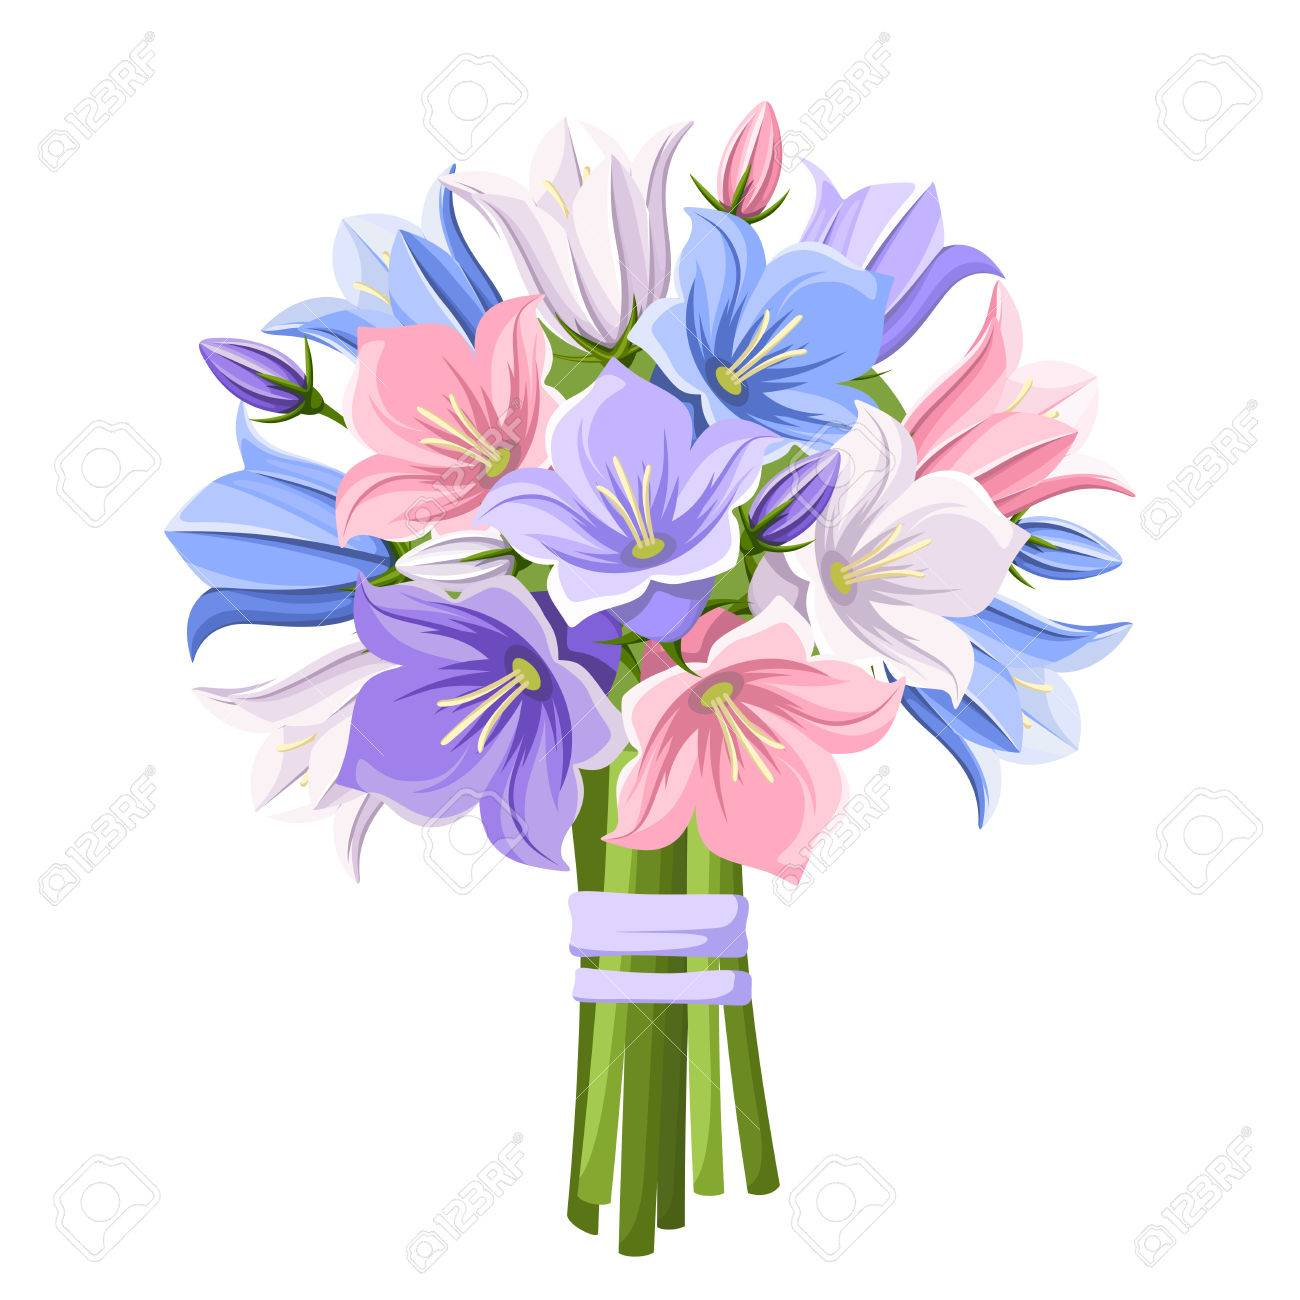 Bouquet of blue purple pink and white bluebell flowers isolated bouquet of blue purple pink and white bluebell flowers isolated on a white background mightylinksfo Gallery